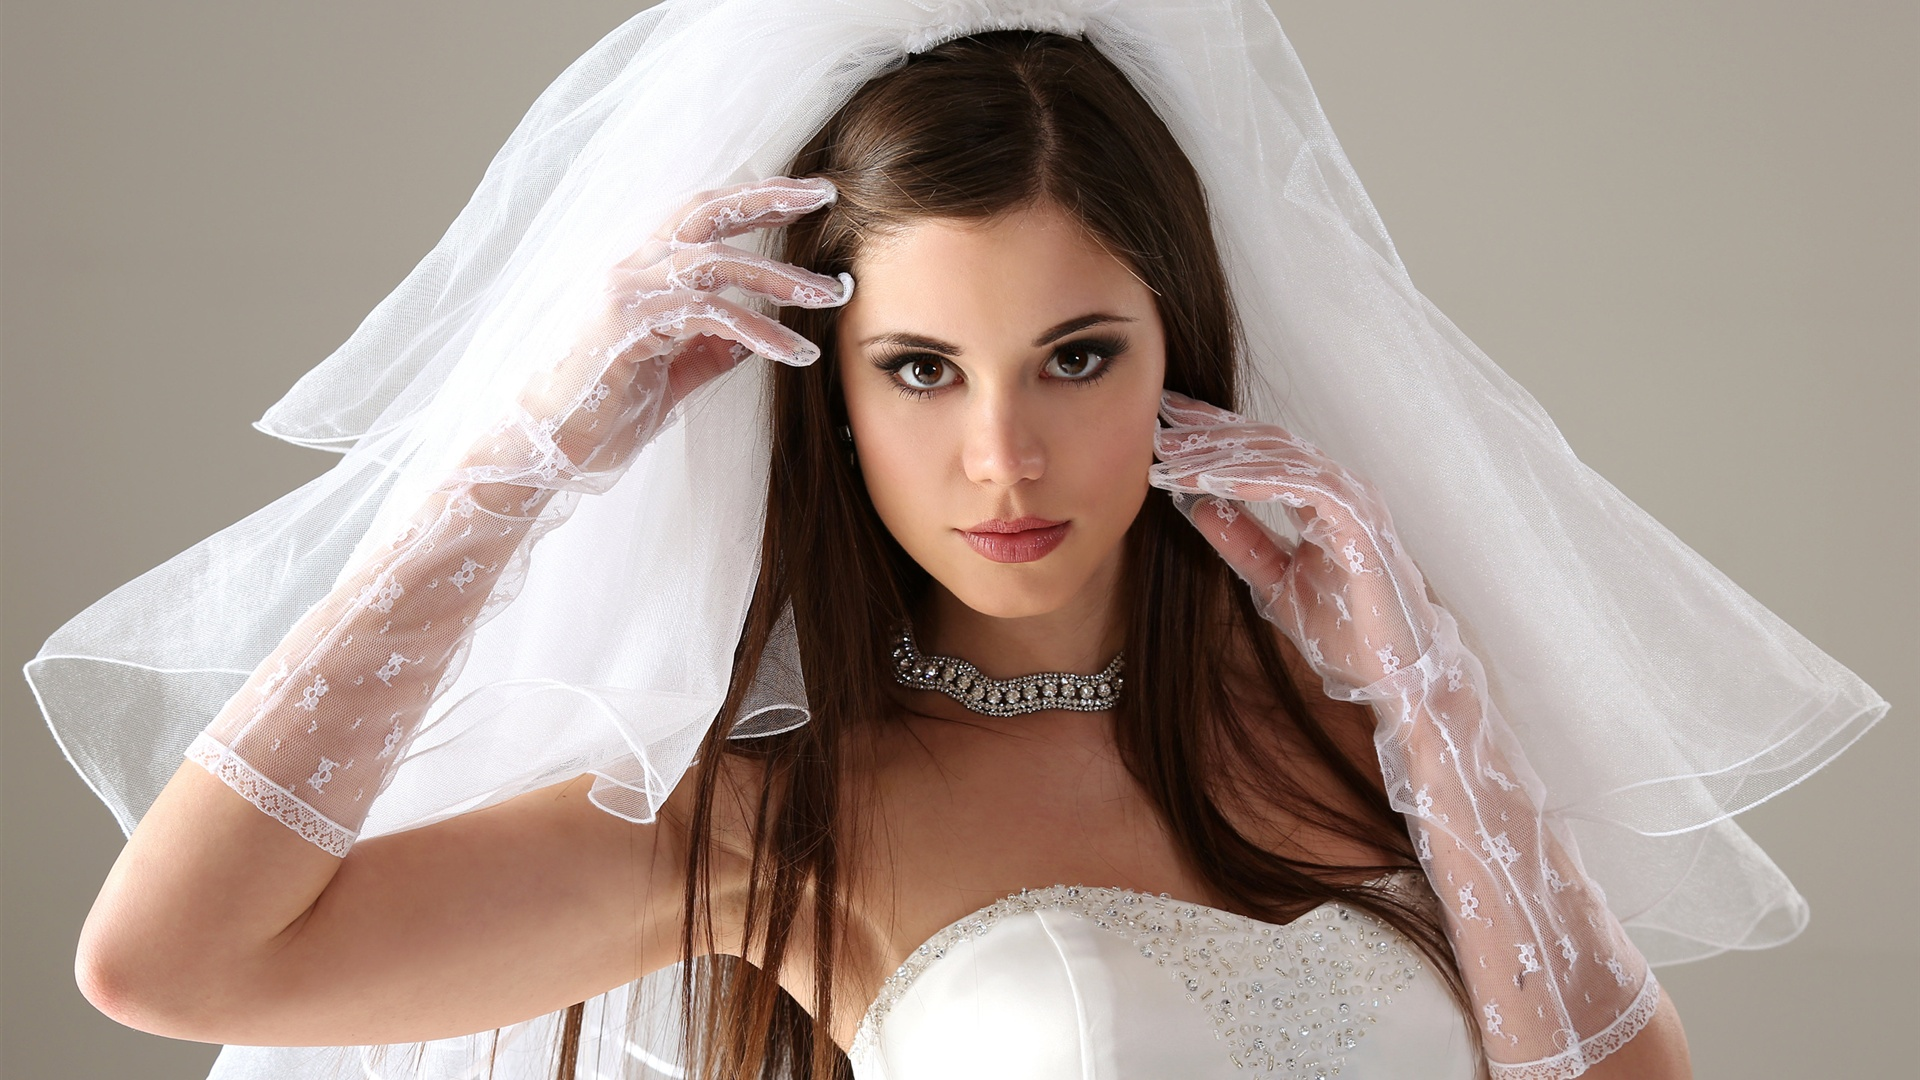 Bride Full Hd Wallpaper And Background Image  1920X1080  Id449464-5798